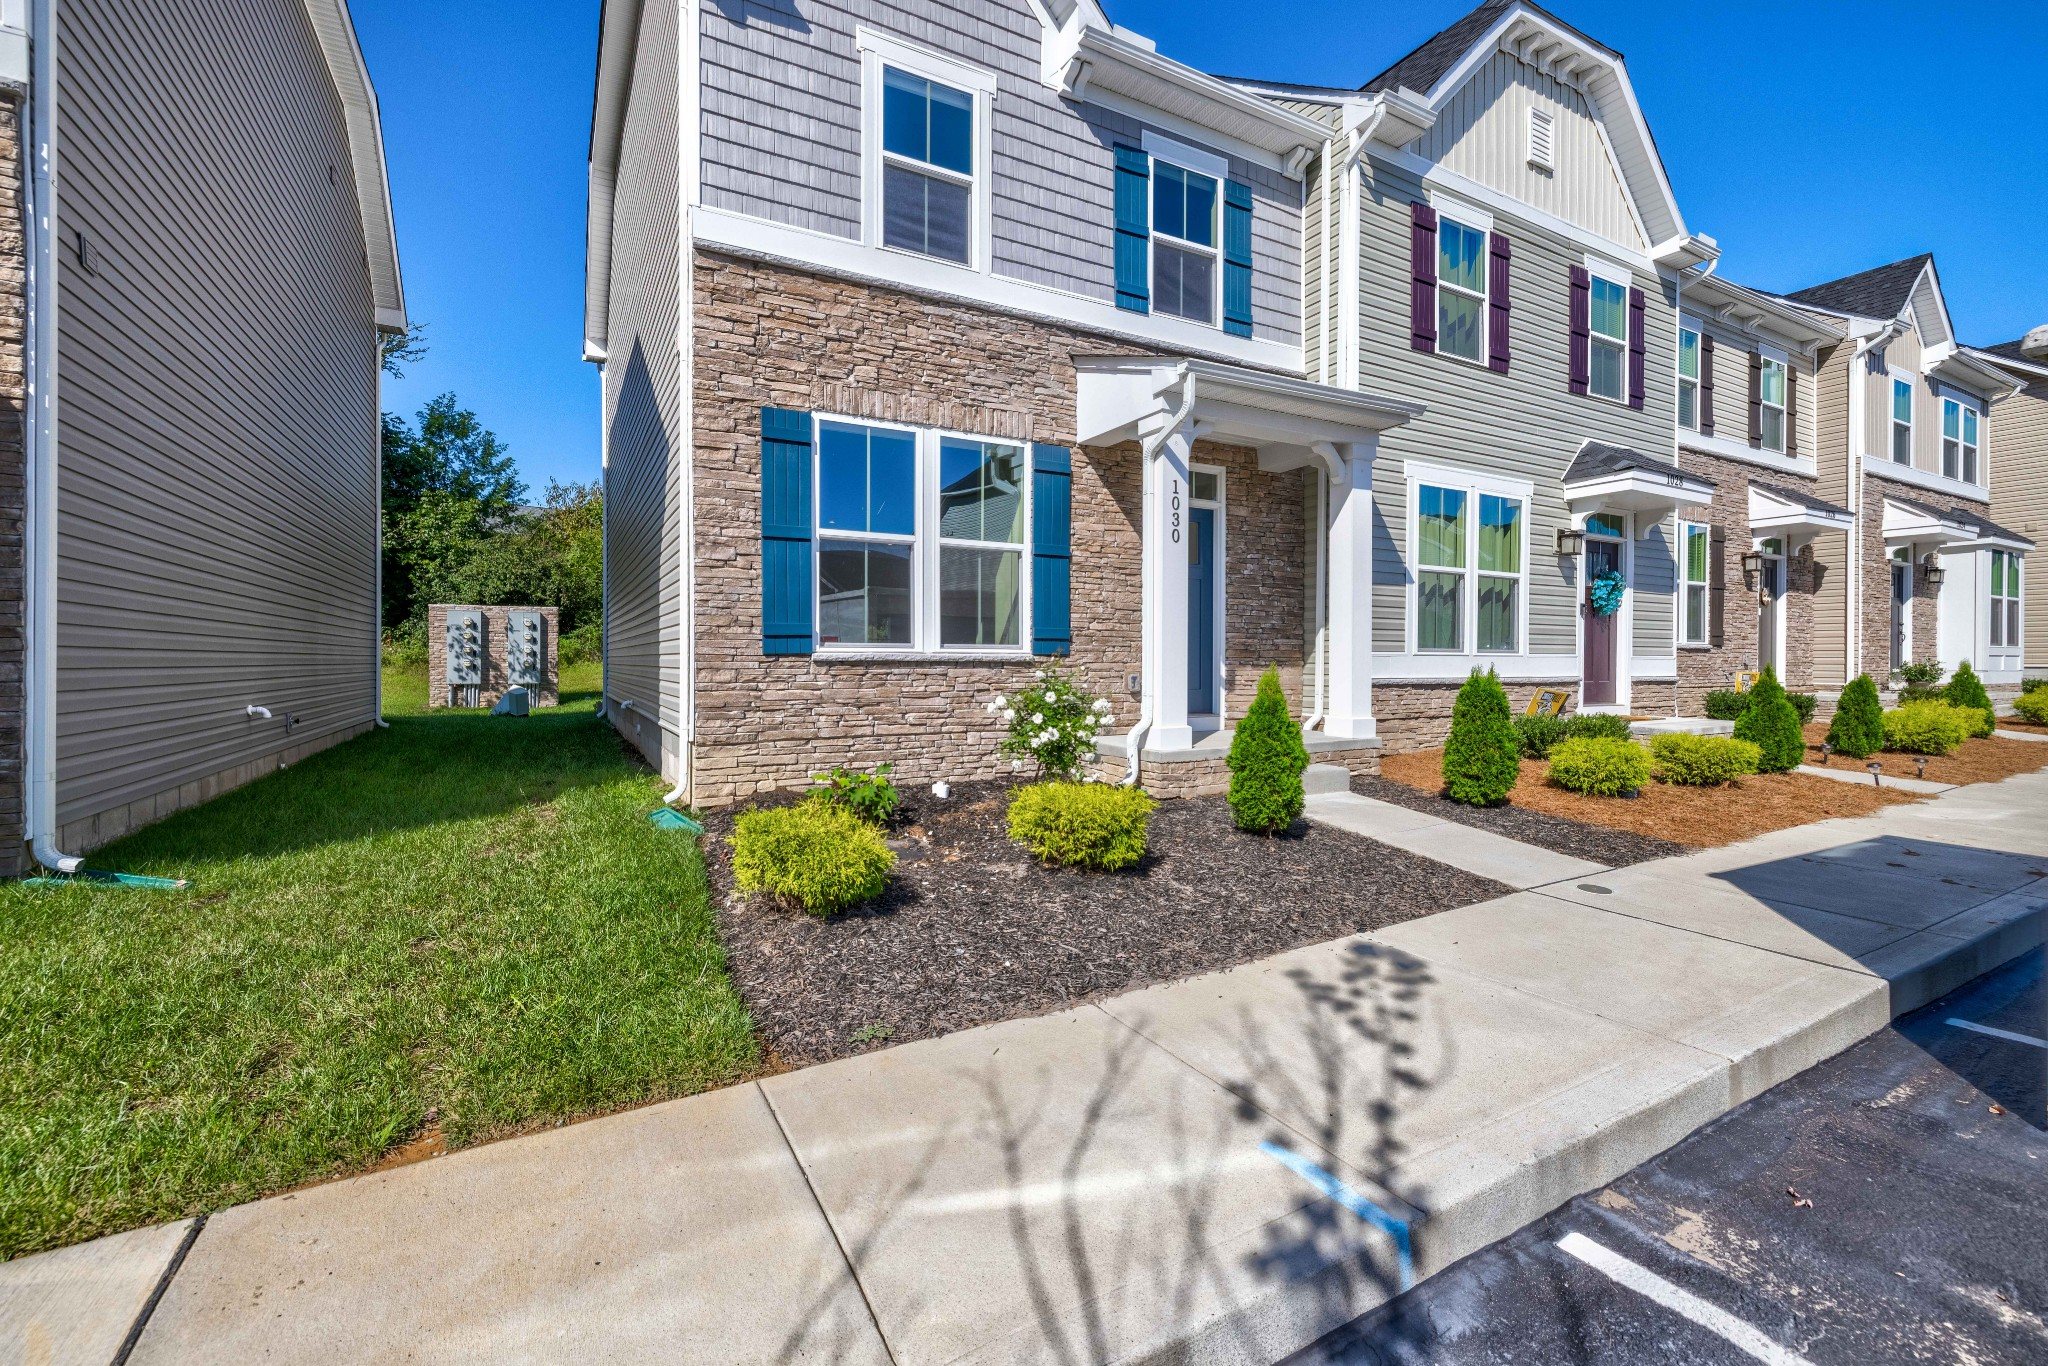 This fabulous townhome was completed in 2020! It has both of the bedrooms on the second level with a half bath on the main, perfect for guests! The home has lots of natural light, kitchen island, a breakfast nook with even more natural light, and hardwoods. There is a patio out back to relax, or take a dip in the community pool! Very convenient to Percy Priest Lake, I24, and the airport.